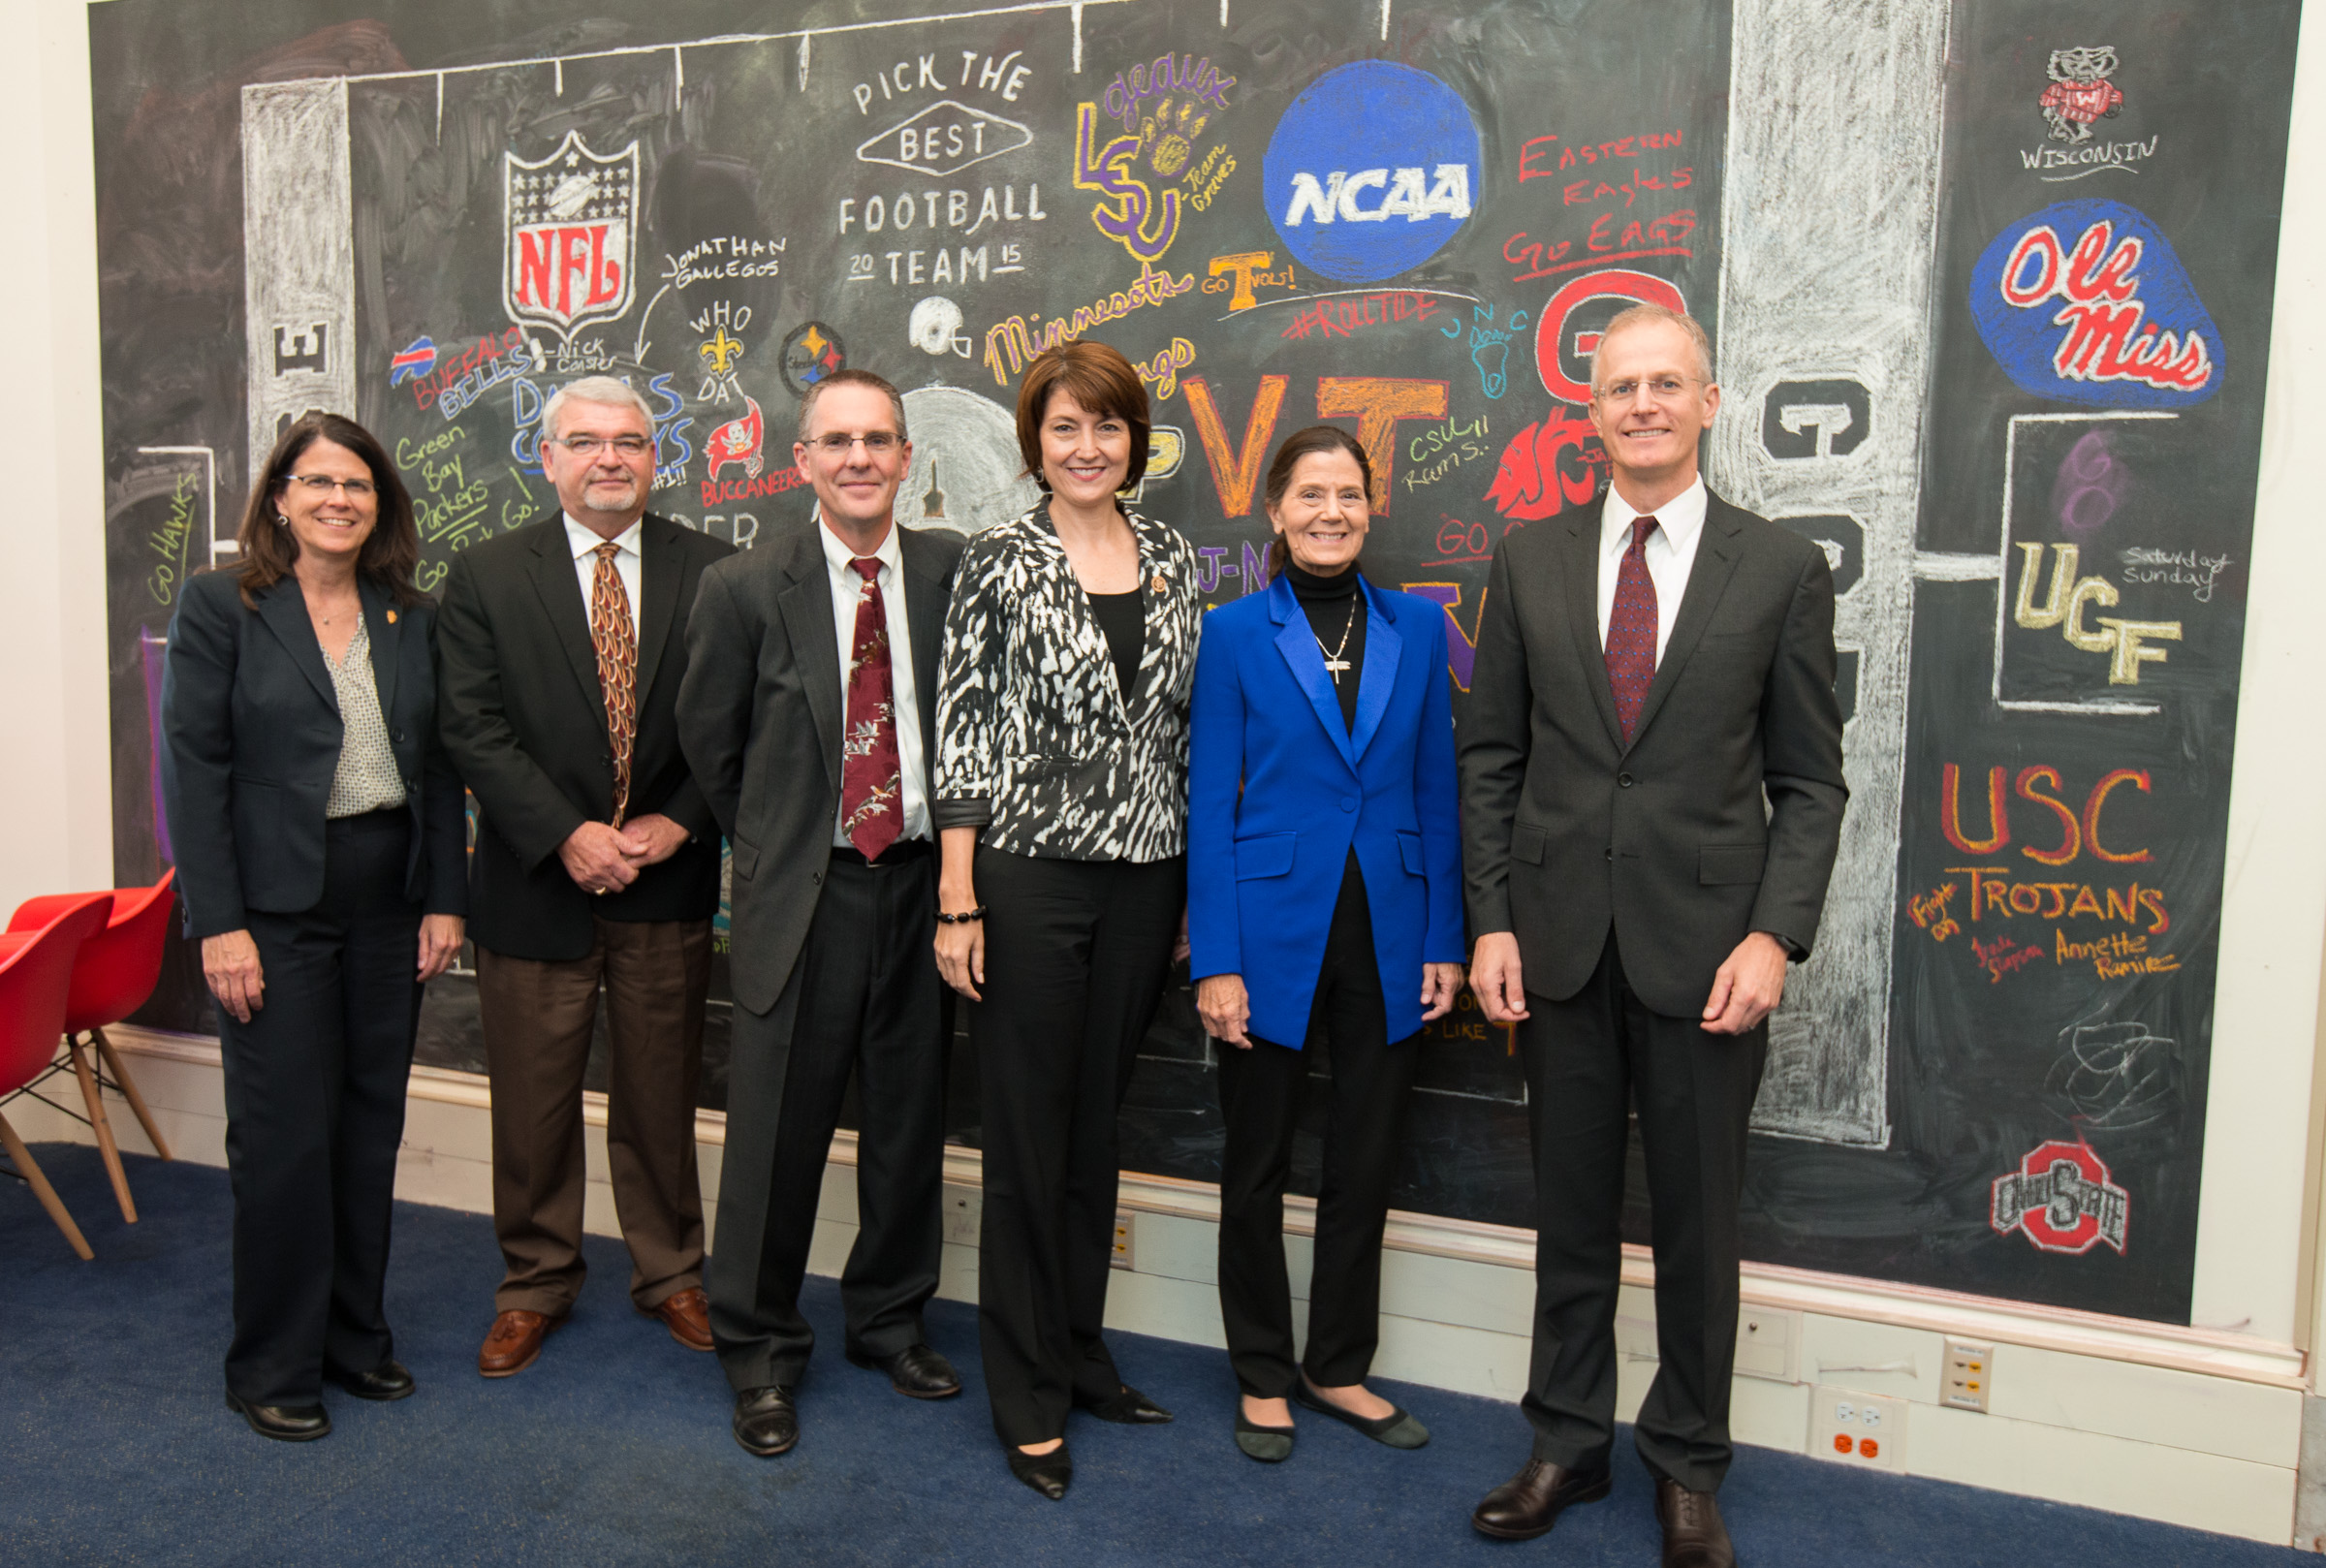 From left to right: Federal Government Relations Director Cathy Baker, Board Member Bruce Nelson, Board Chair Byron Bishop, Congresswoman Cathy McMorris Rodgers (R-Spokane).Global Director of Public Policy for the Conservancy Lynn Scarlett, Washington State Director Mike Stevens.